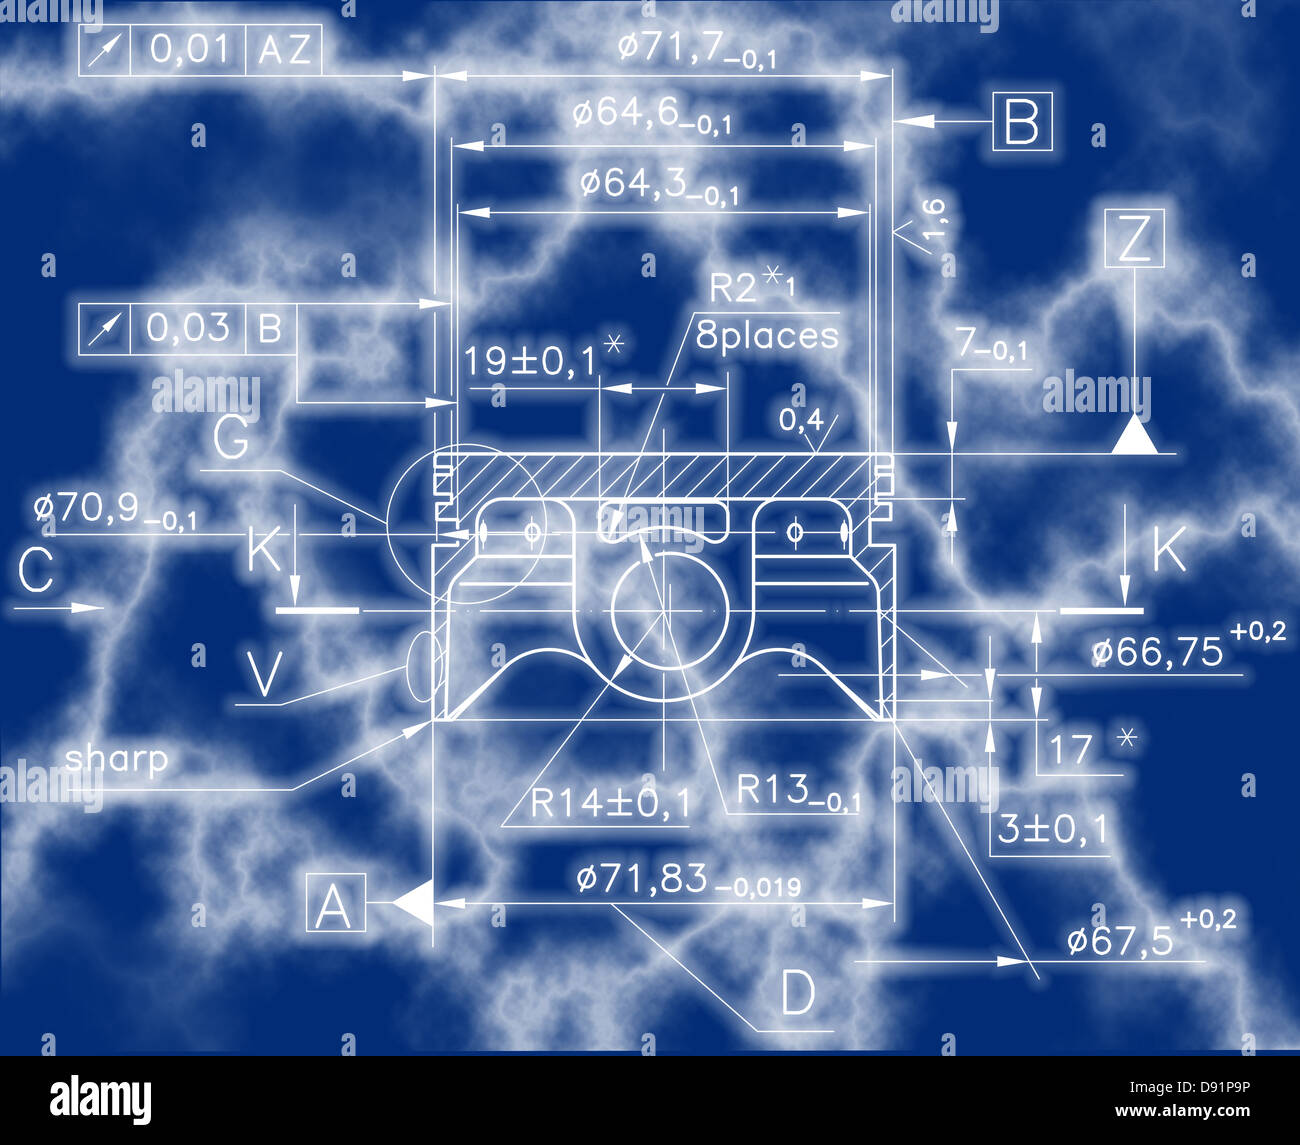 hight resolution of design drawings of nonexistent internal combustion engine piston clipping path stock image